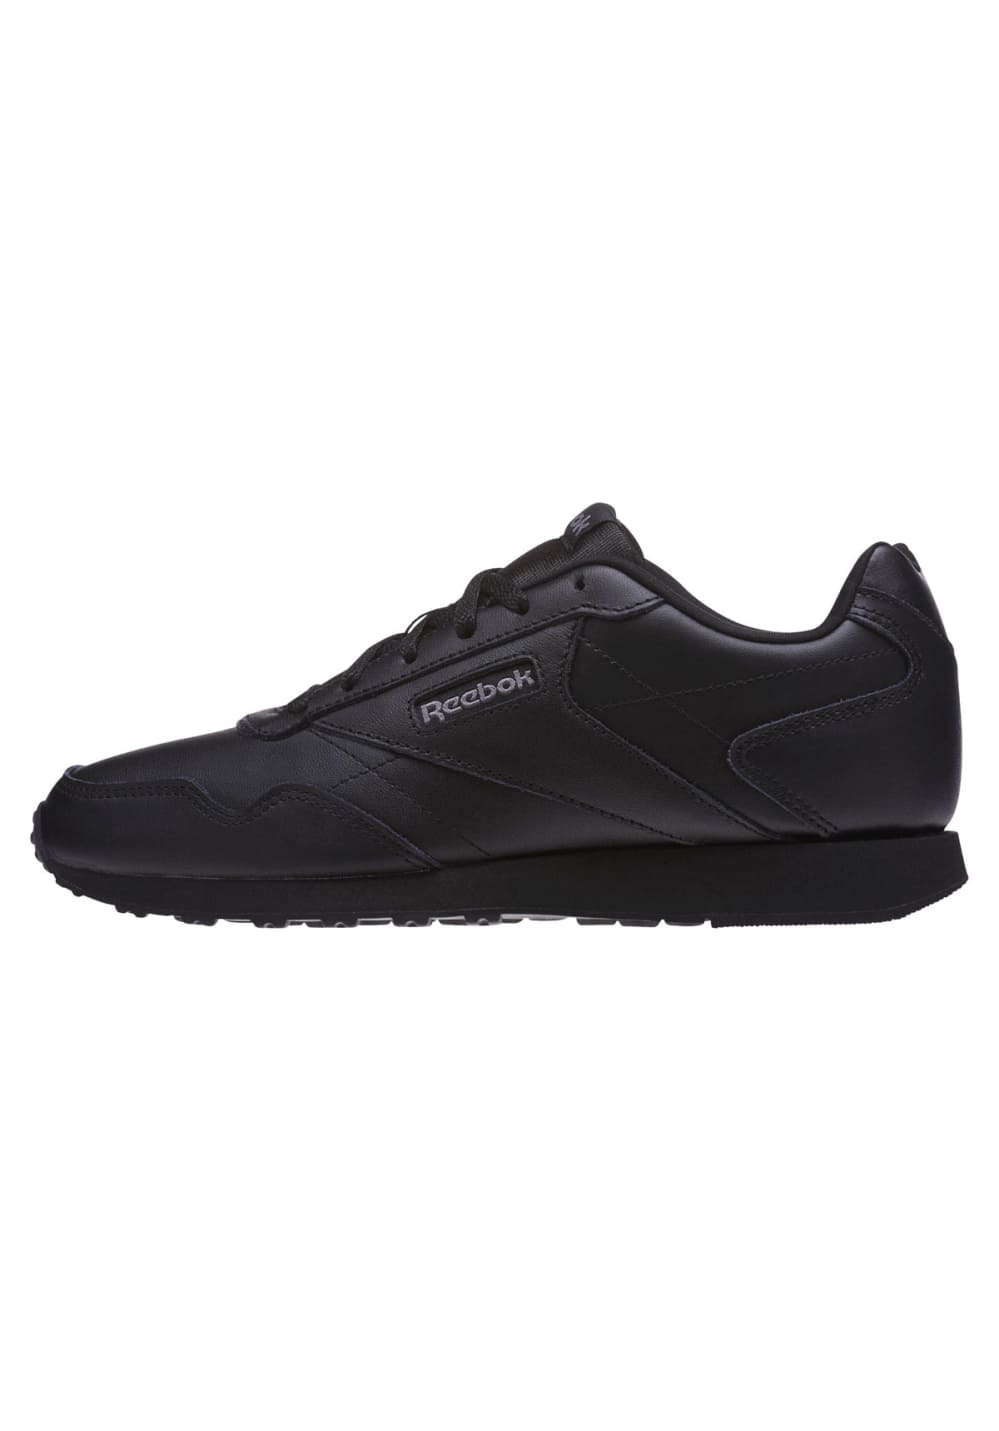 44961c997696f Reebok Royal Glide Lx - Fitness shoes for Women - Black